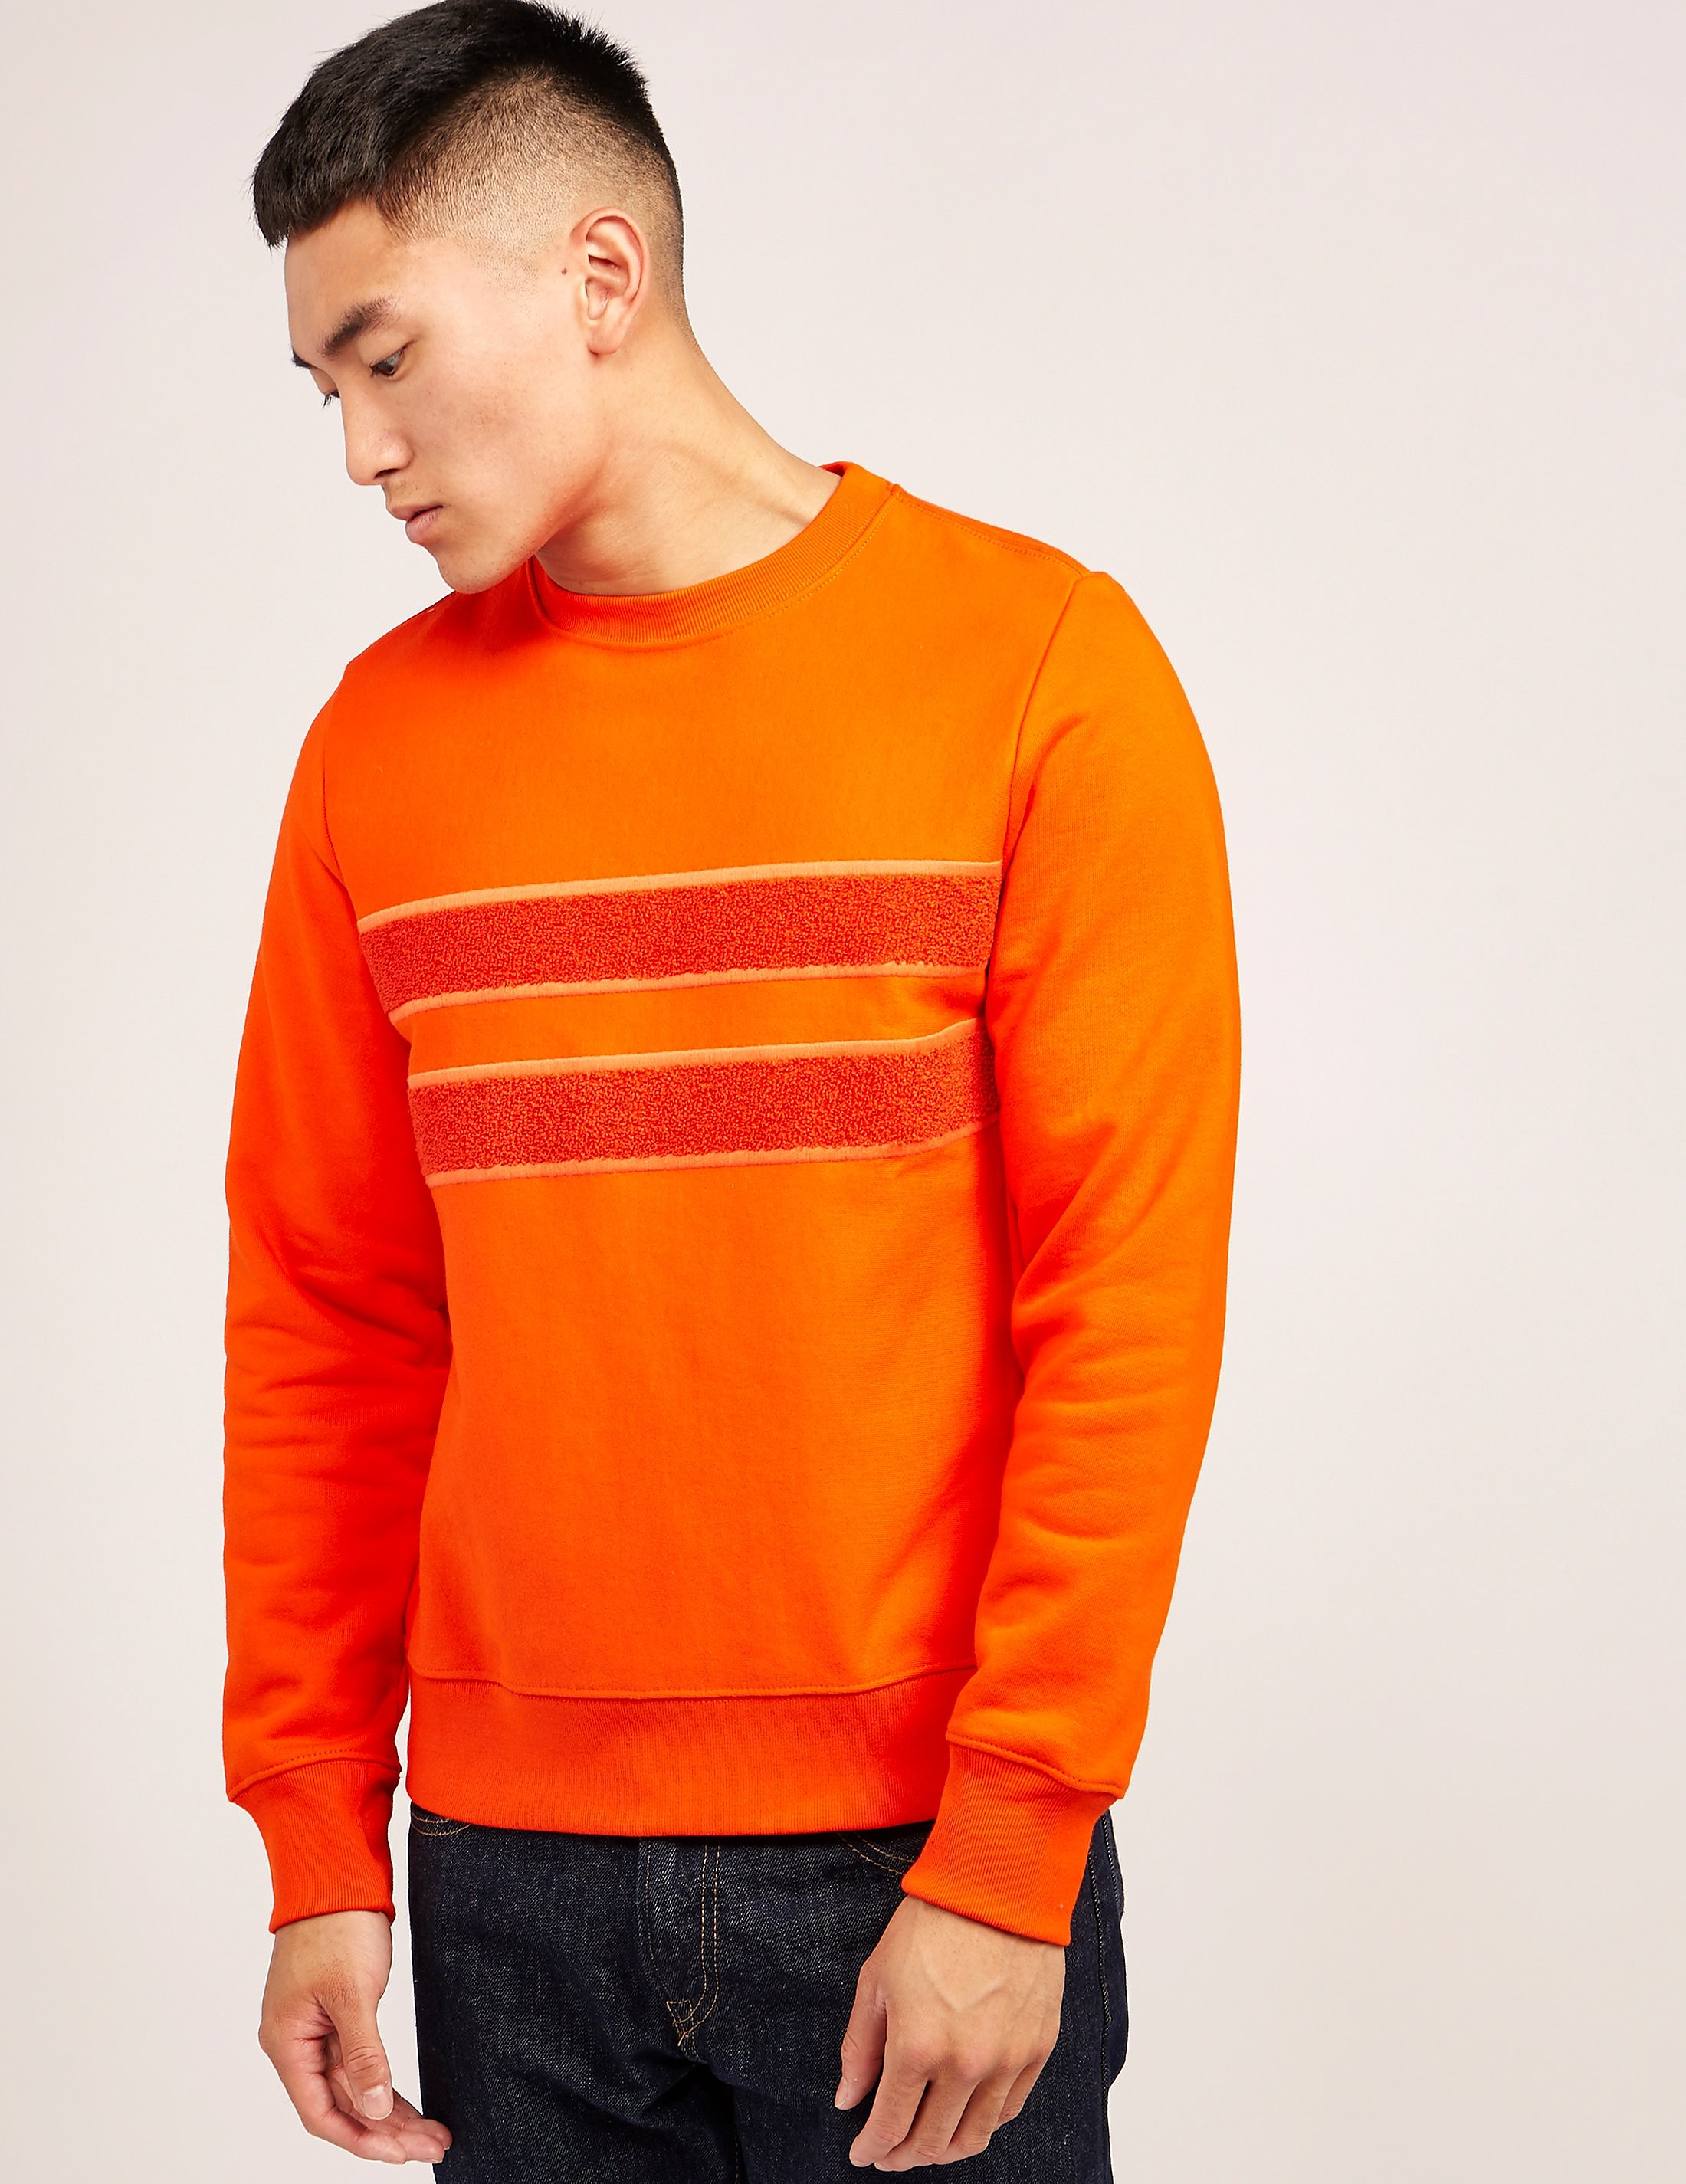 Paul Smith Bouncle Crew Neck Sweatshirt